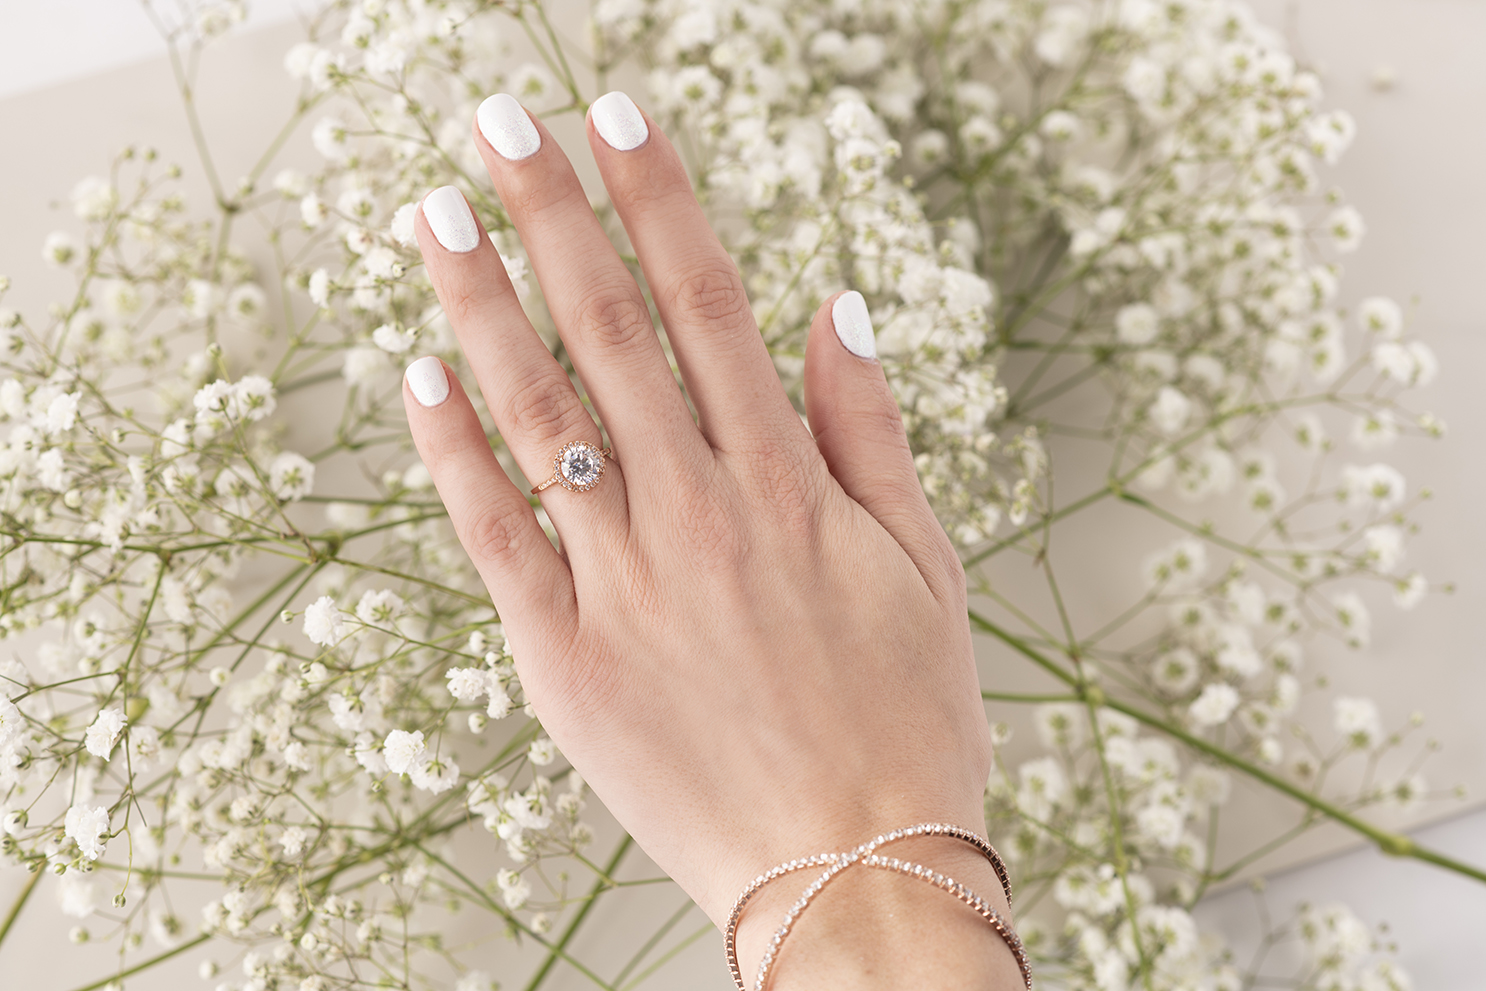 A woman's hand in front of white flowers with a white and glitter manicure.